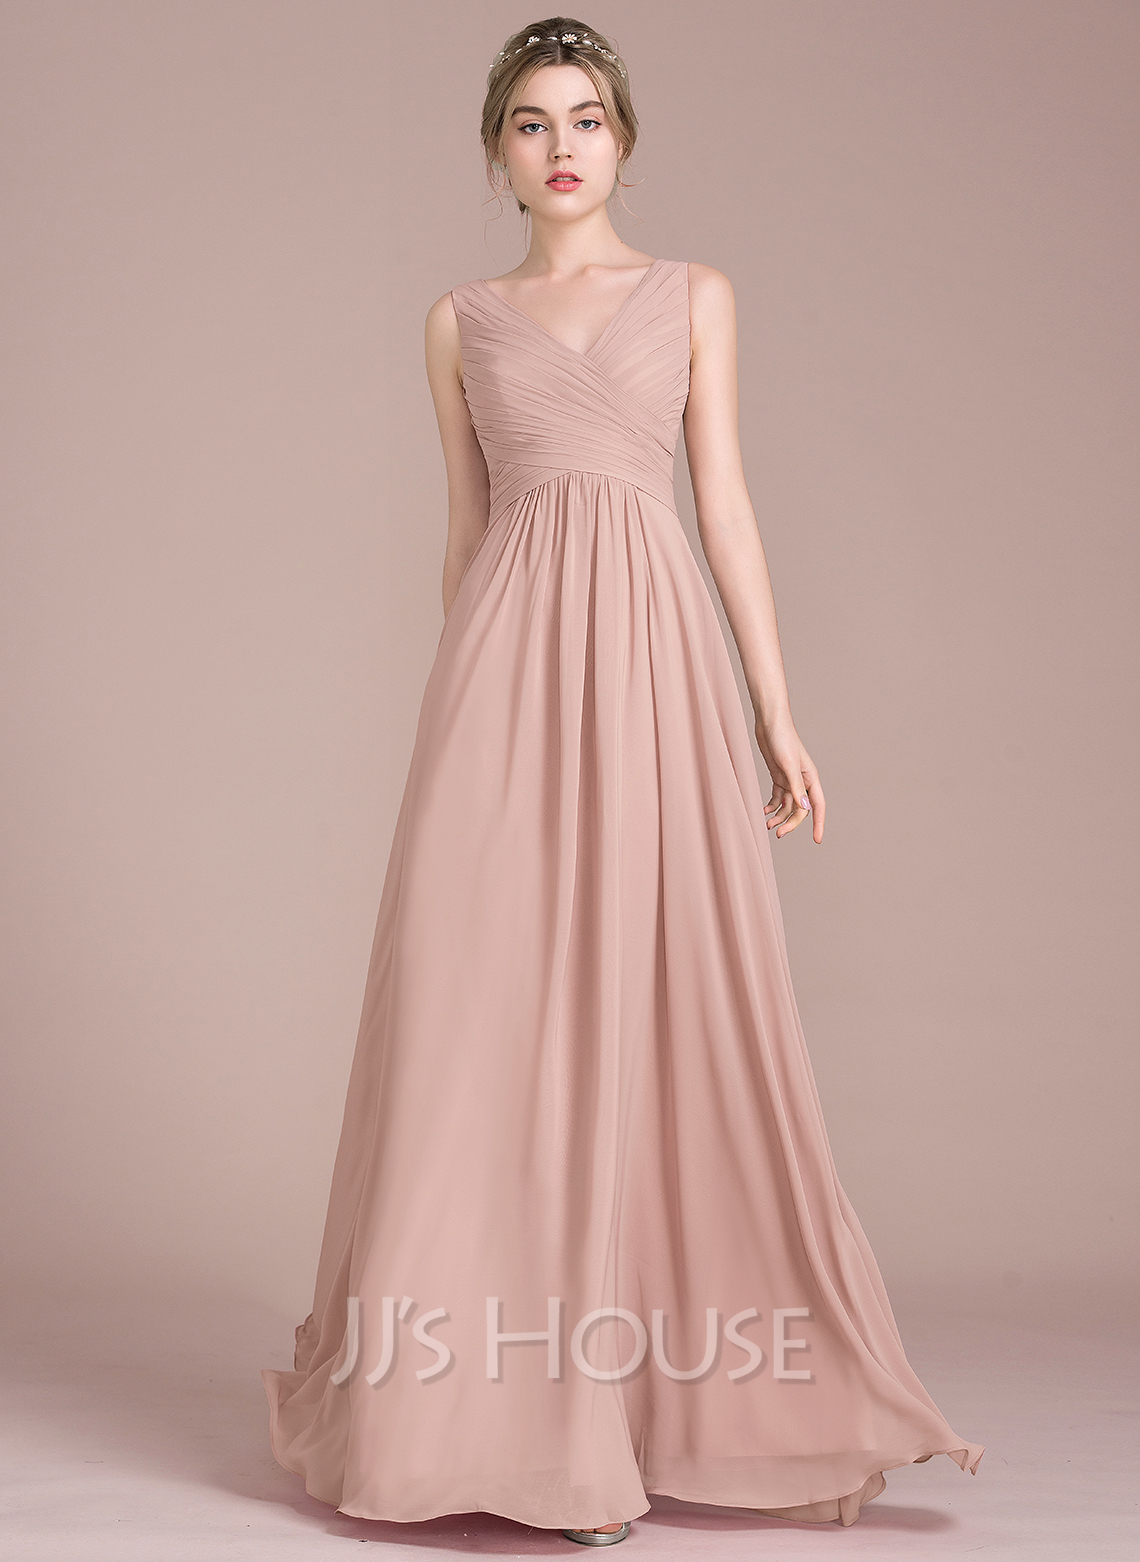 d83774a39eb A-Line Princess V-neck Floor-Length Chiffon Bridesmaid Dress With Ruffle.  Loading zoom